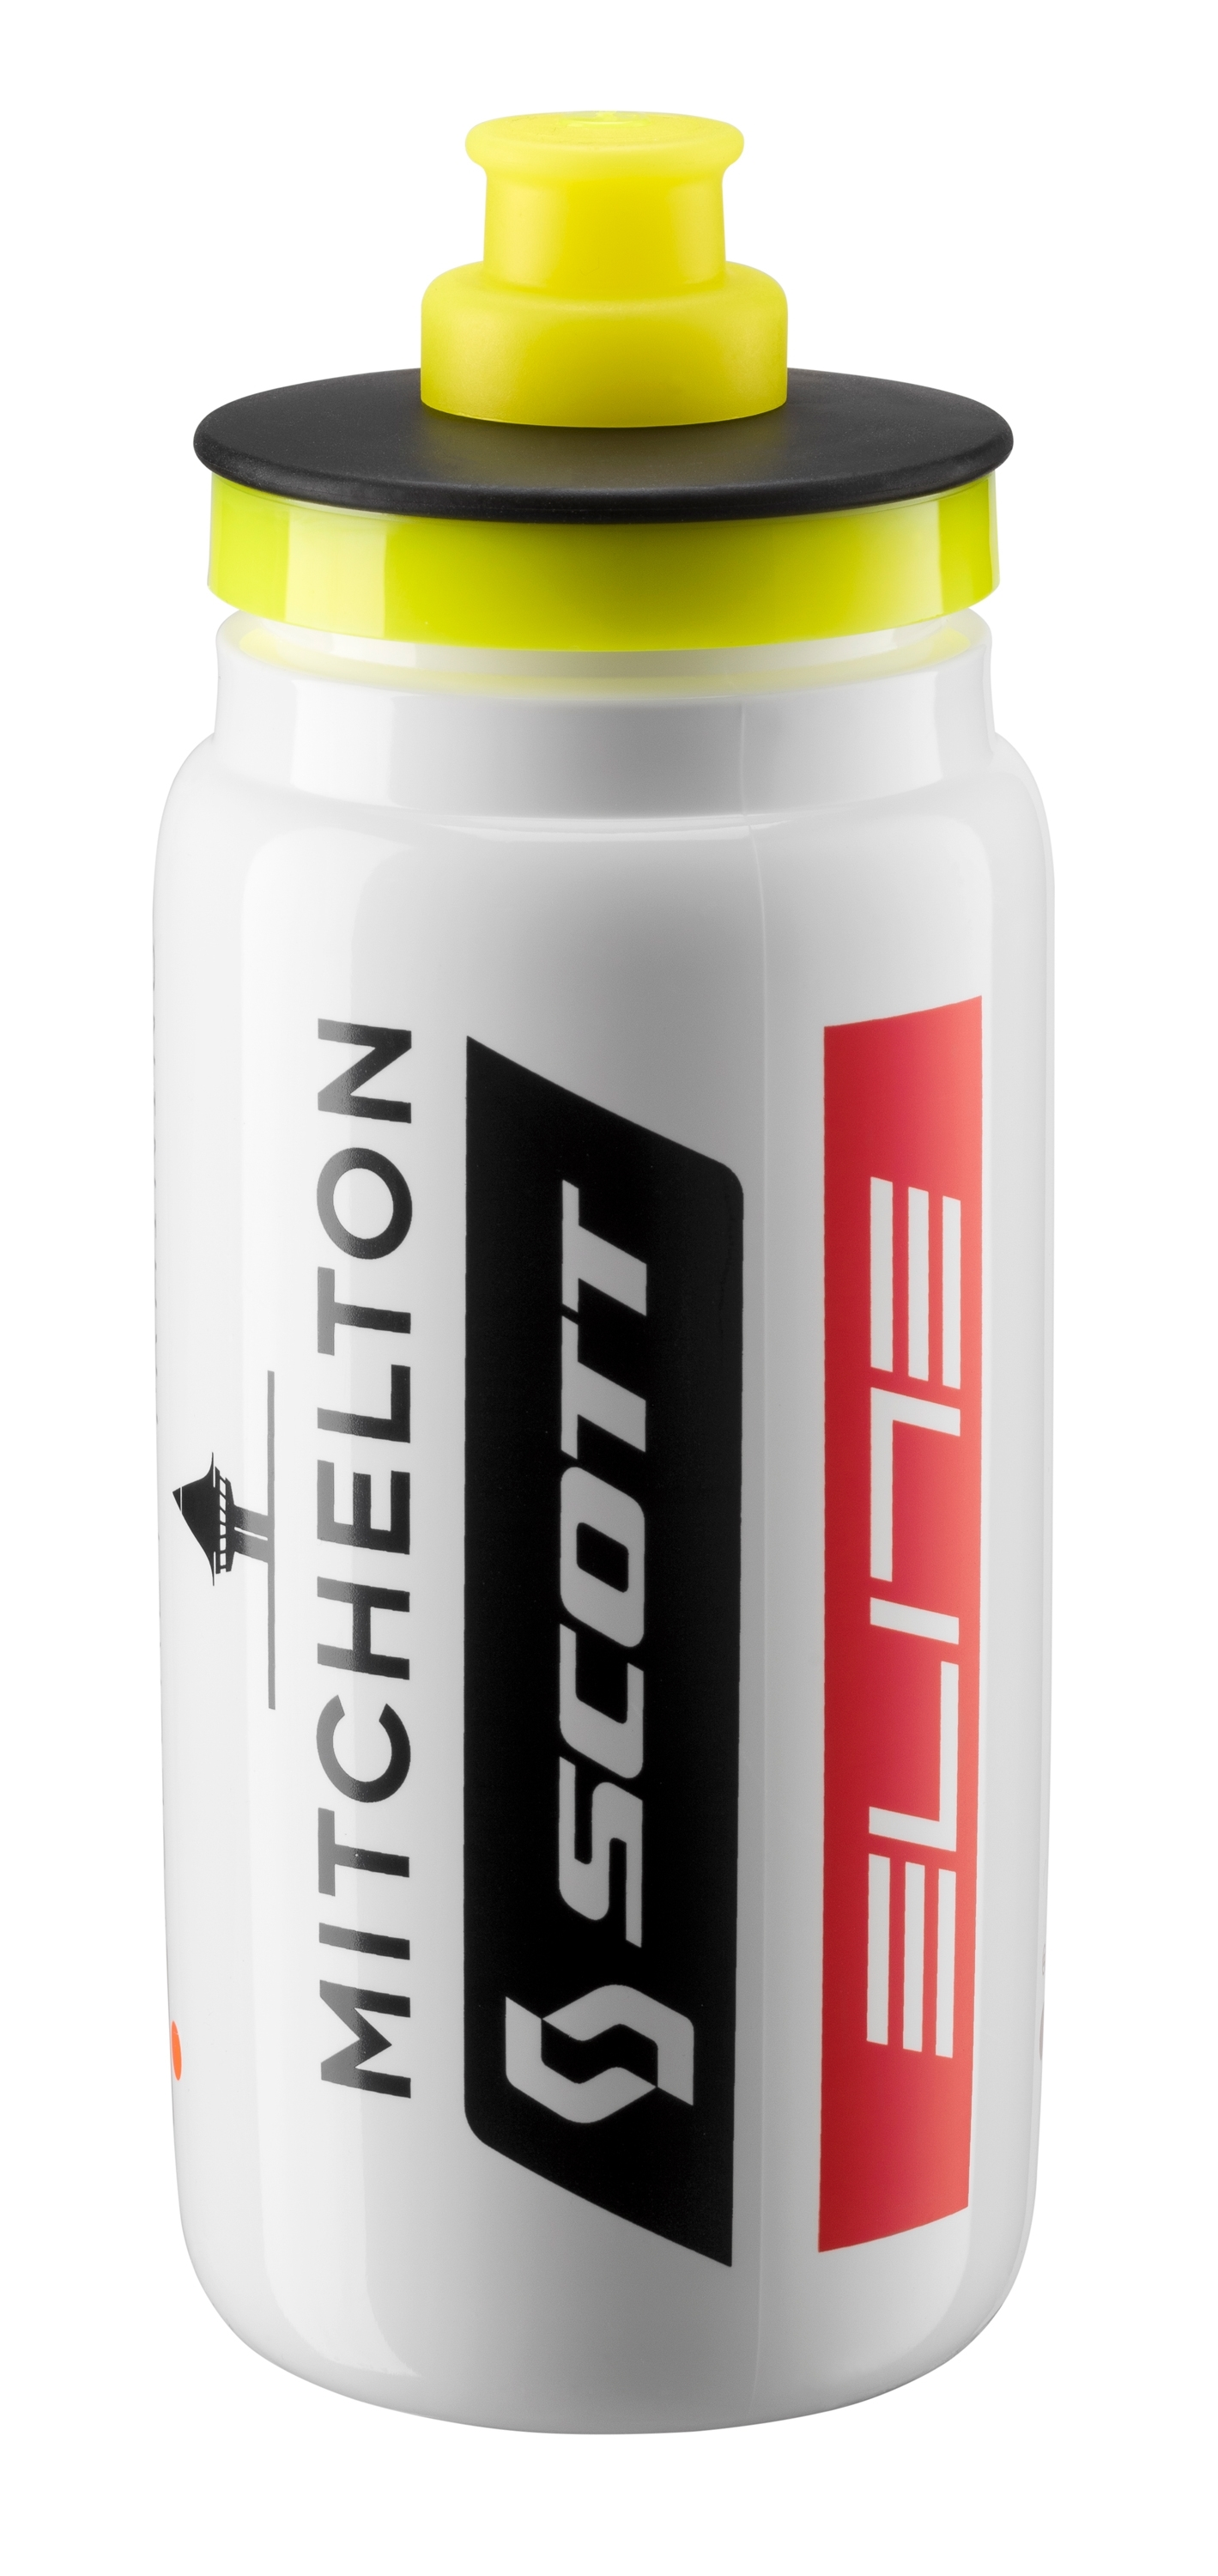 láhev ELITE FLY TEAM MITCHELTON-SCOTT 0,55 l,bílá